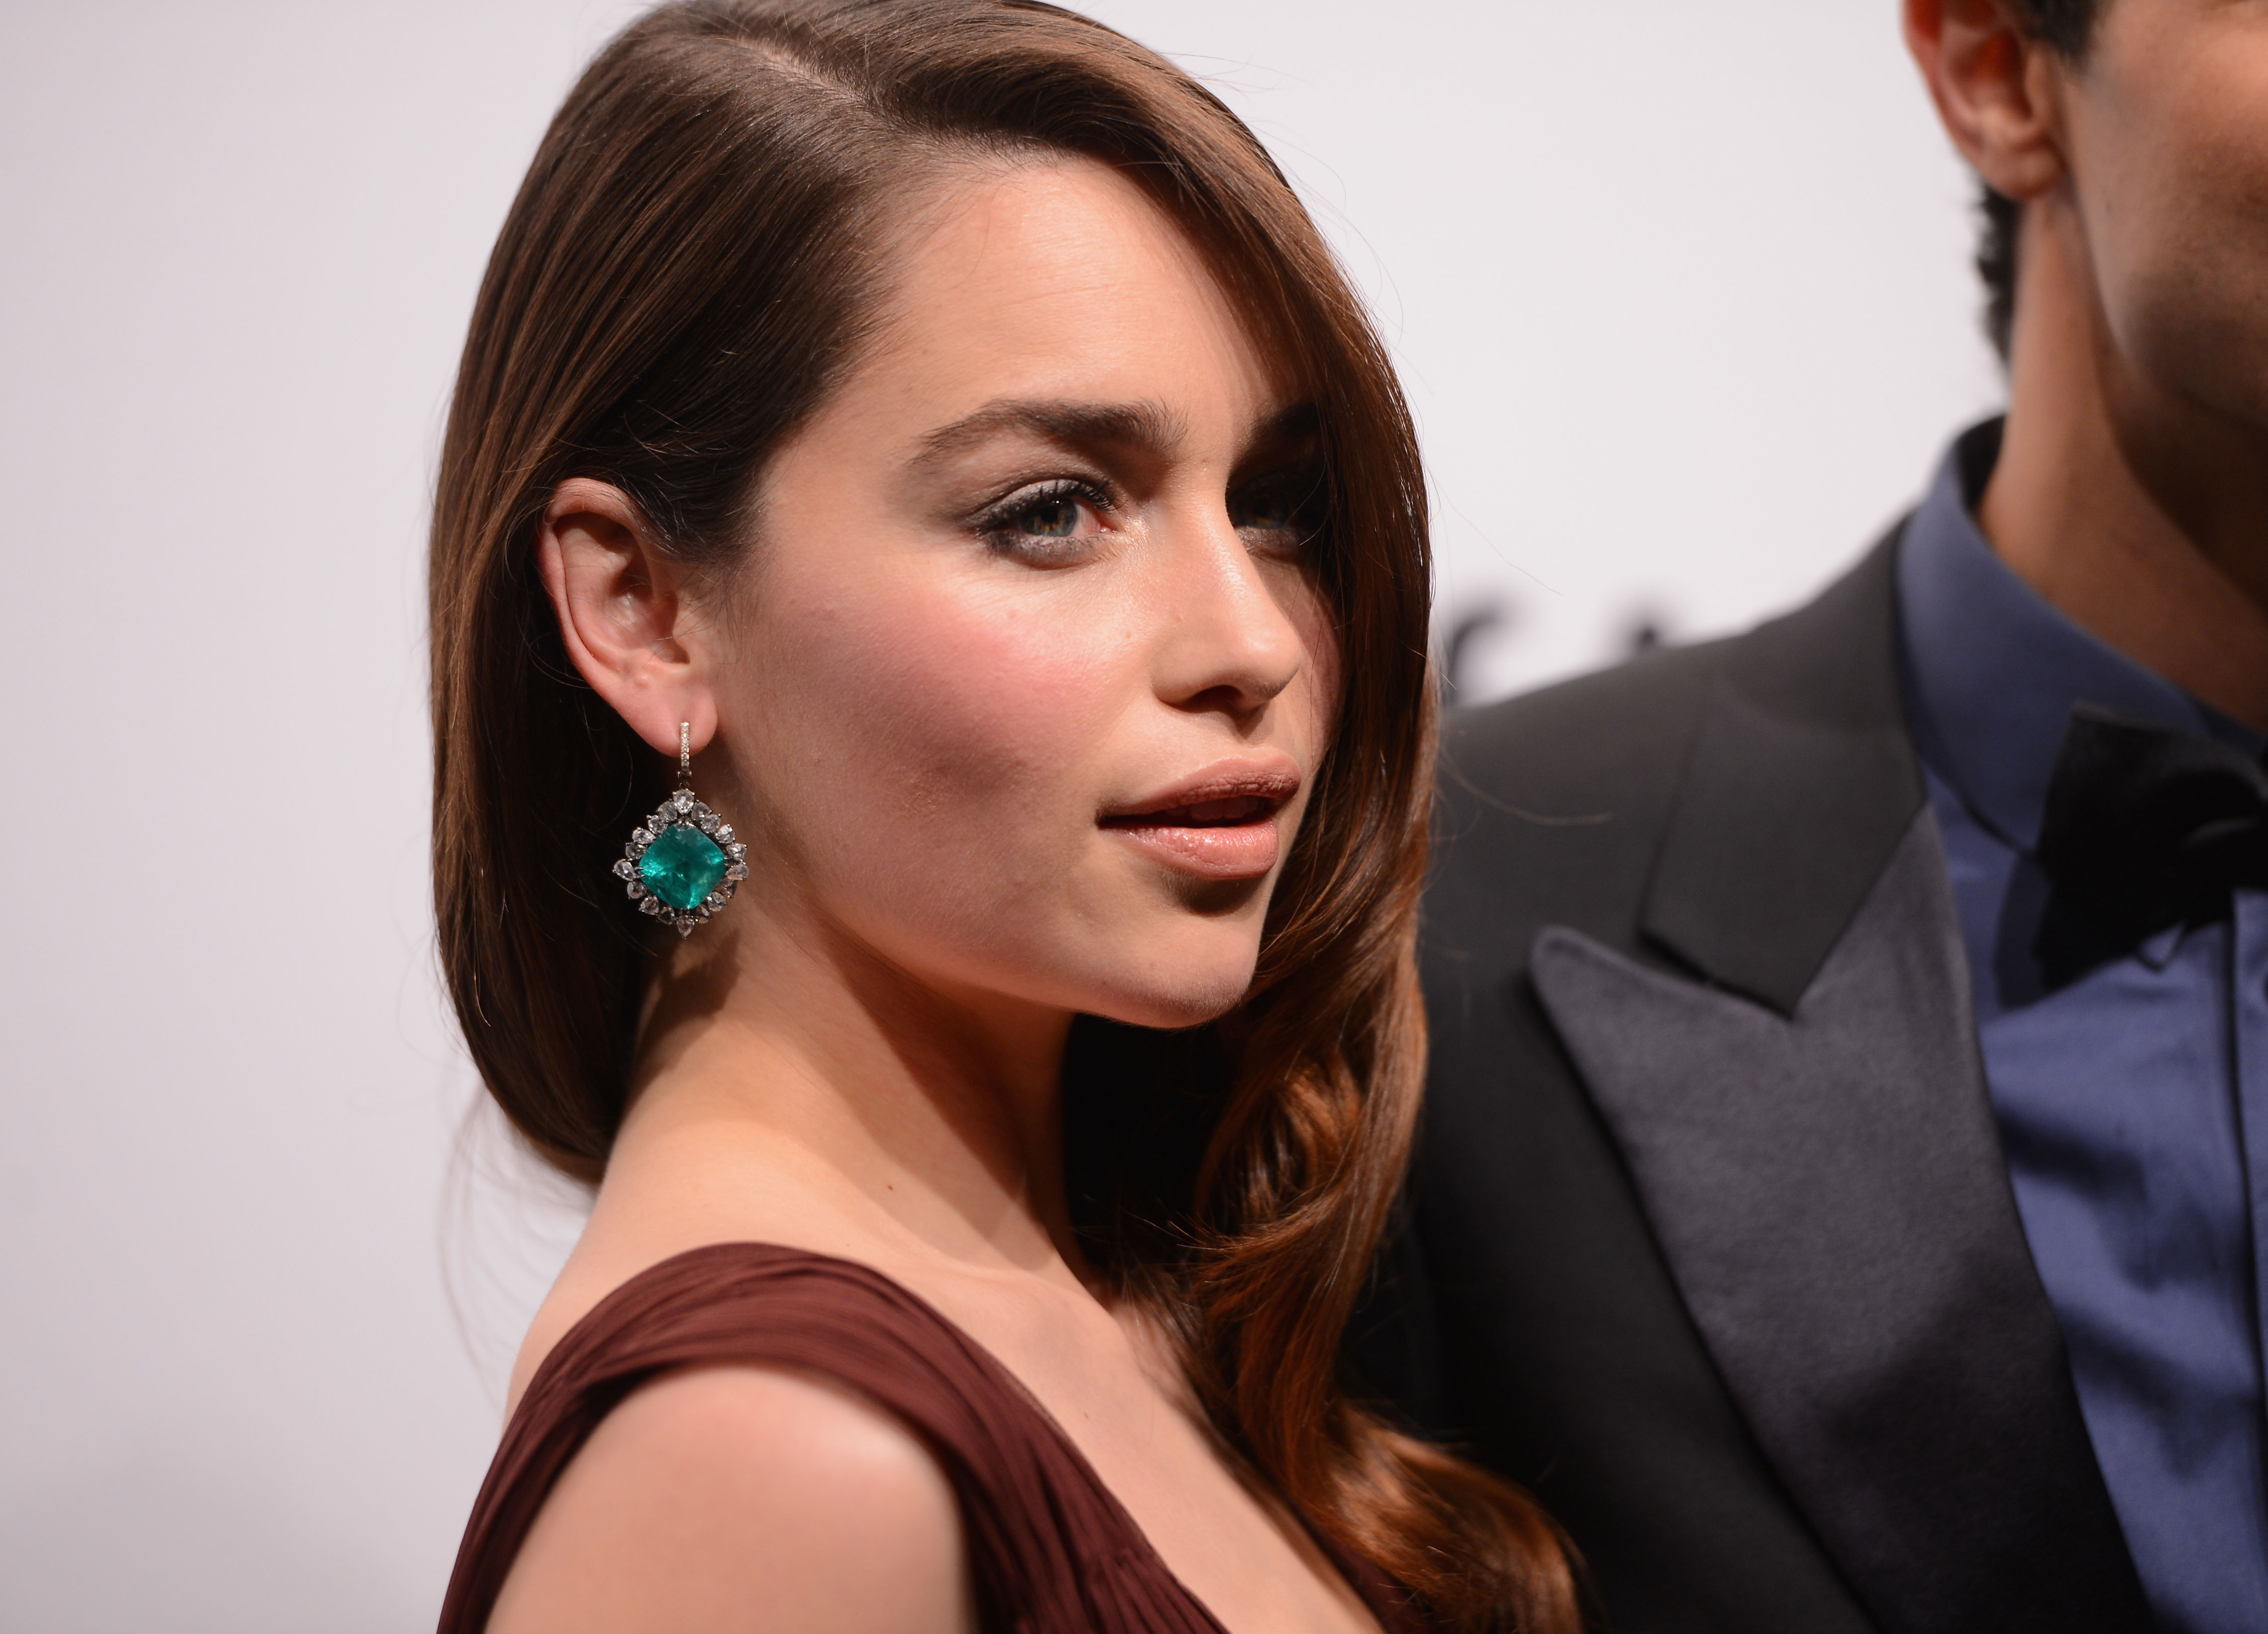 Emilia Clarke Wallpapers the best images in